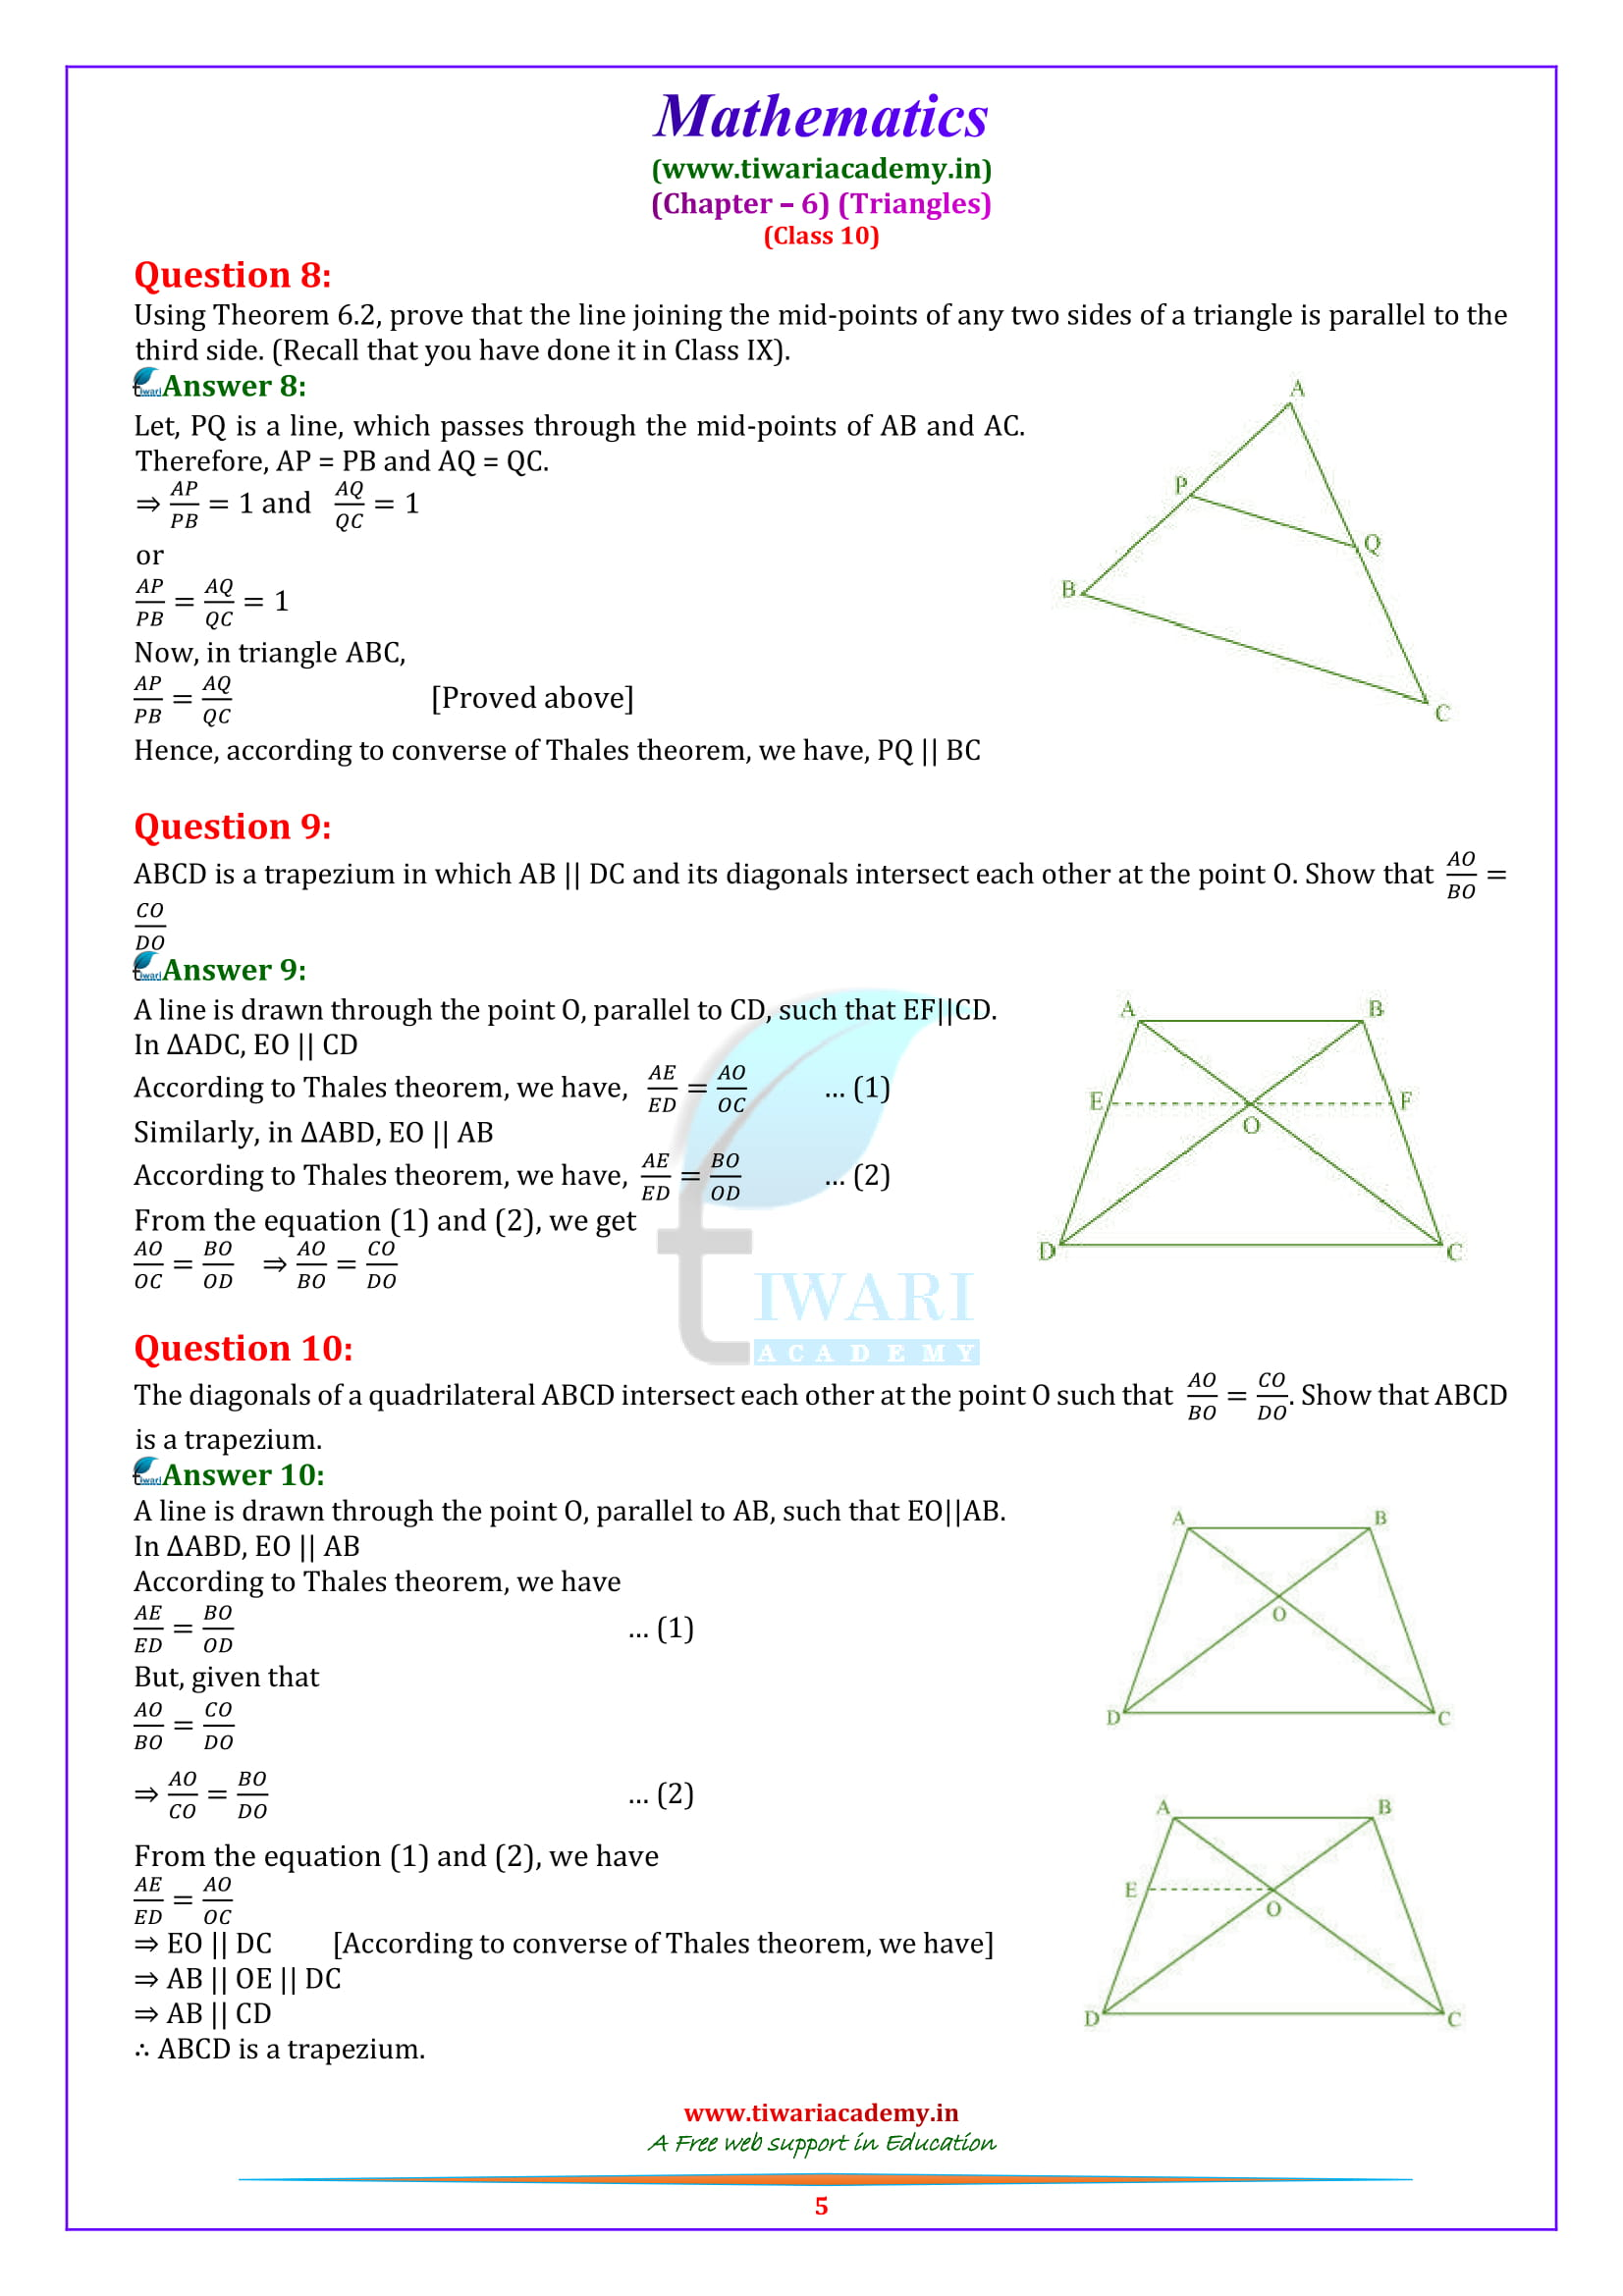 10 Maths Exercise 6.2 Solutions for up board